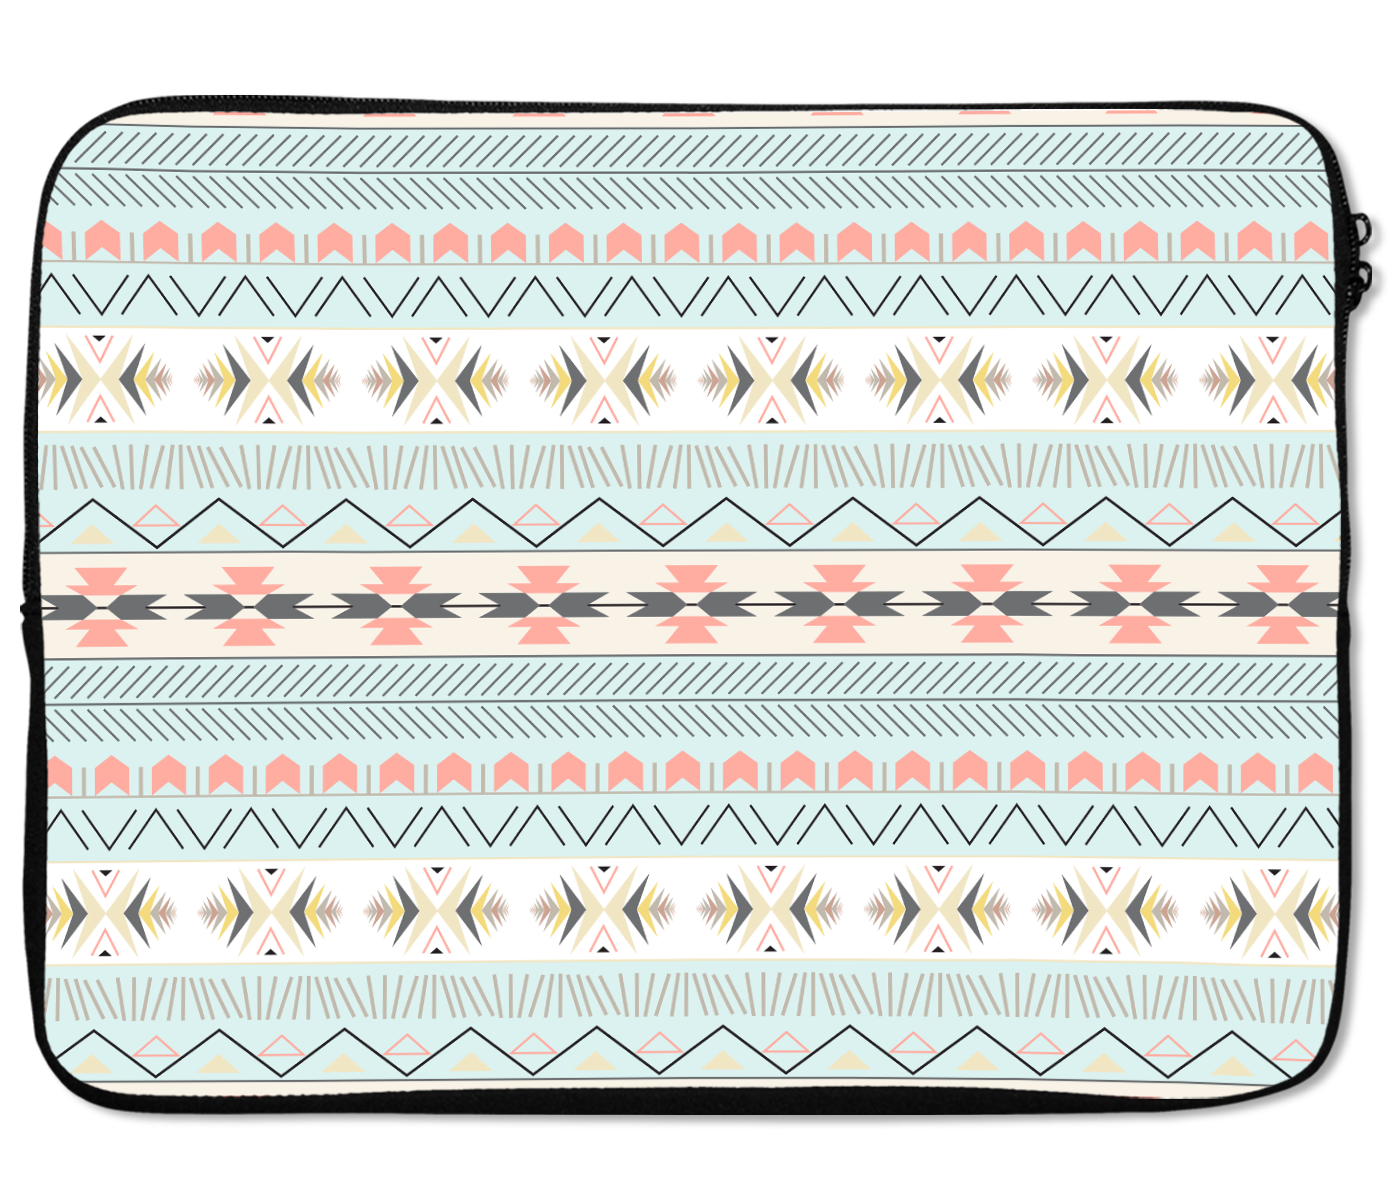 Laptops Tablet Sleeves Soft Colors Chic Elegant Tribal Pattern Premium Quality Neoprene Laptop Protection